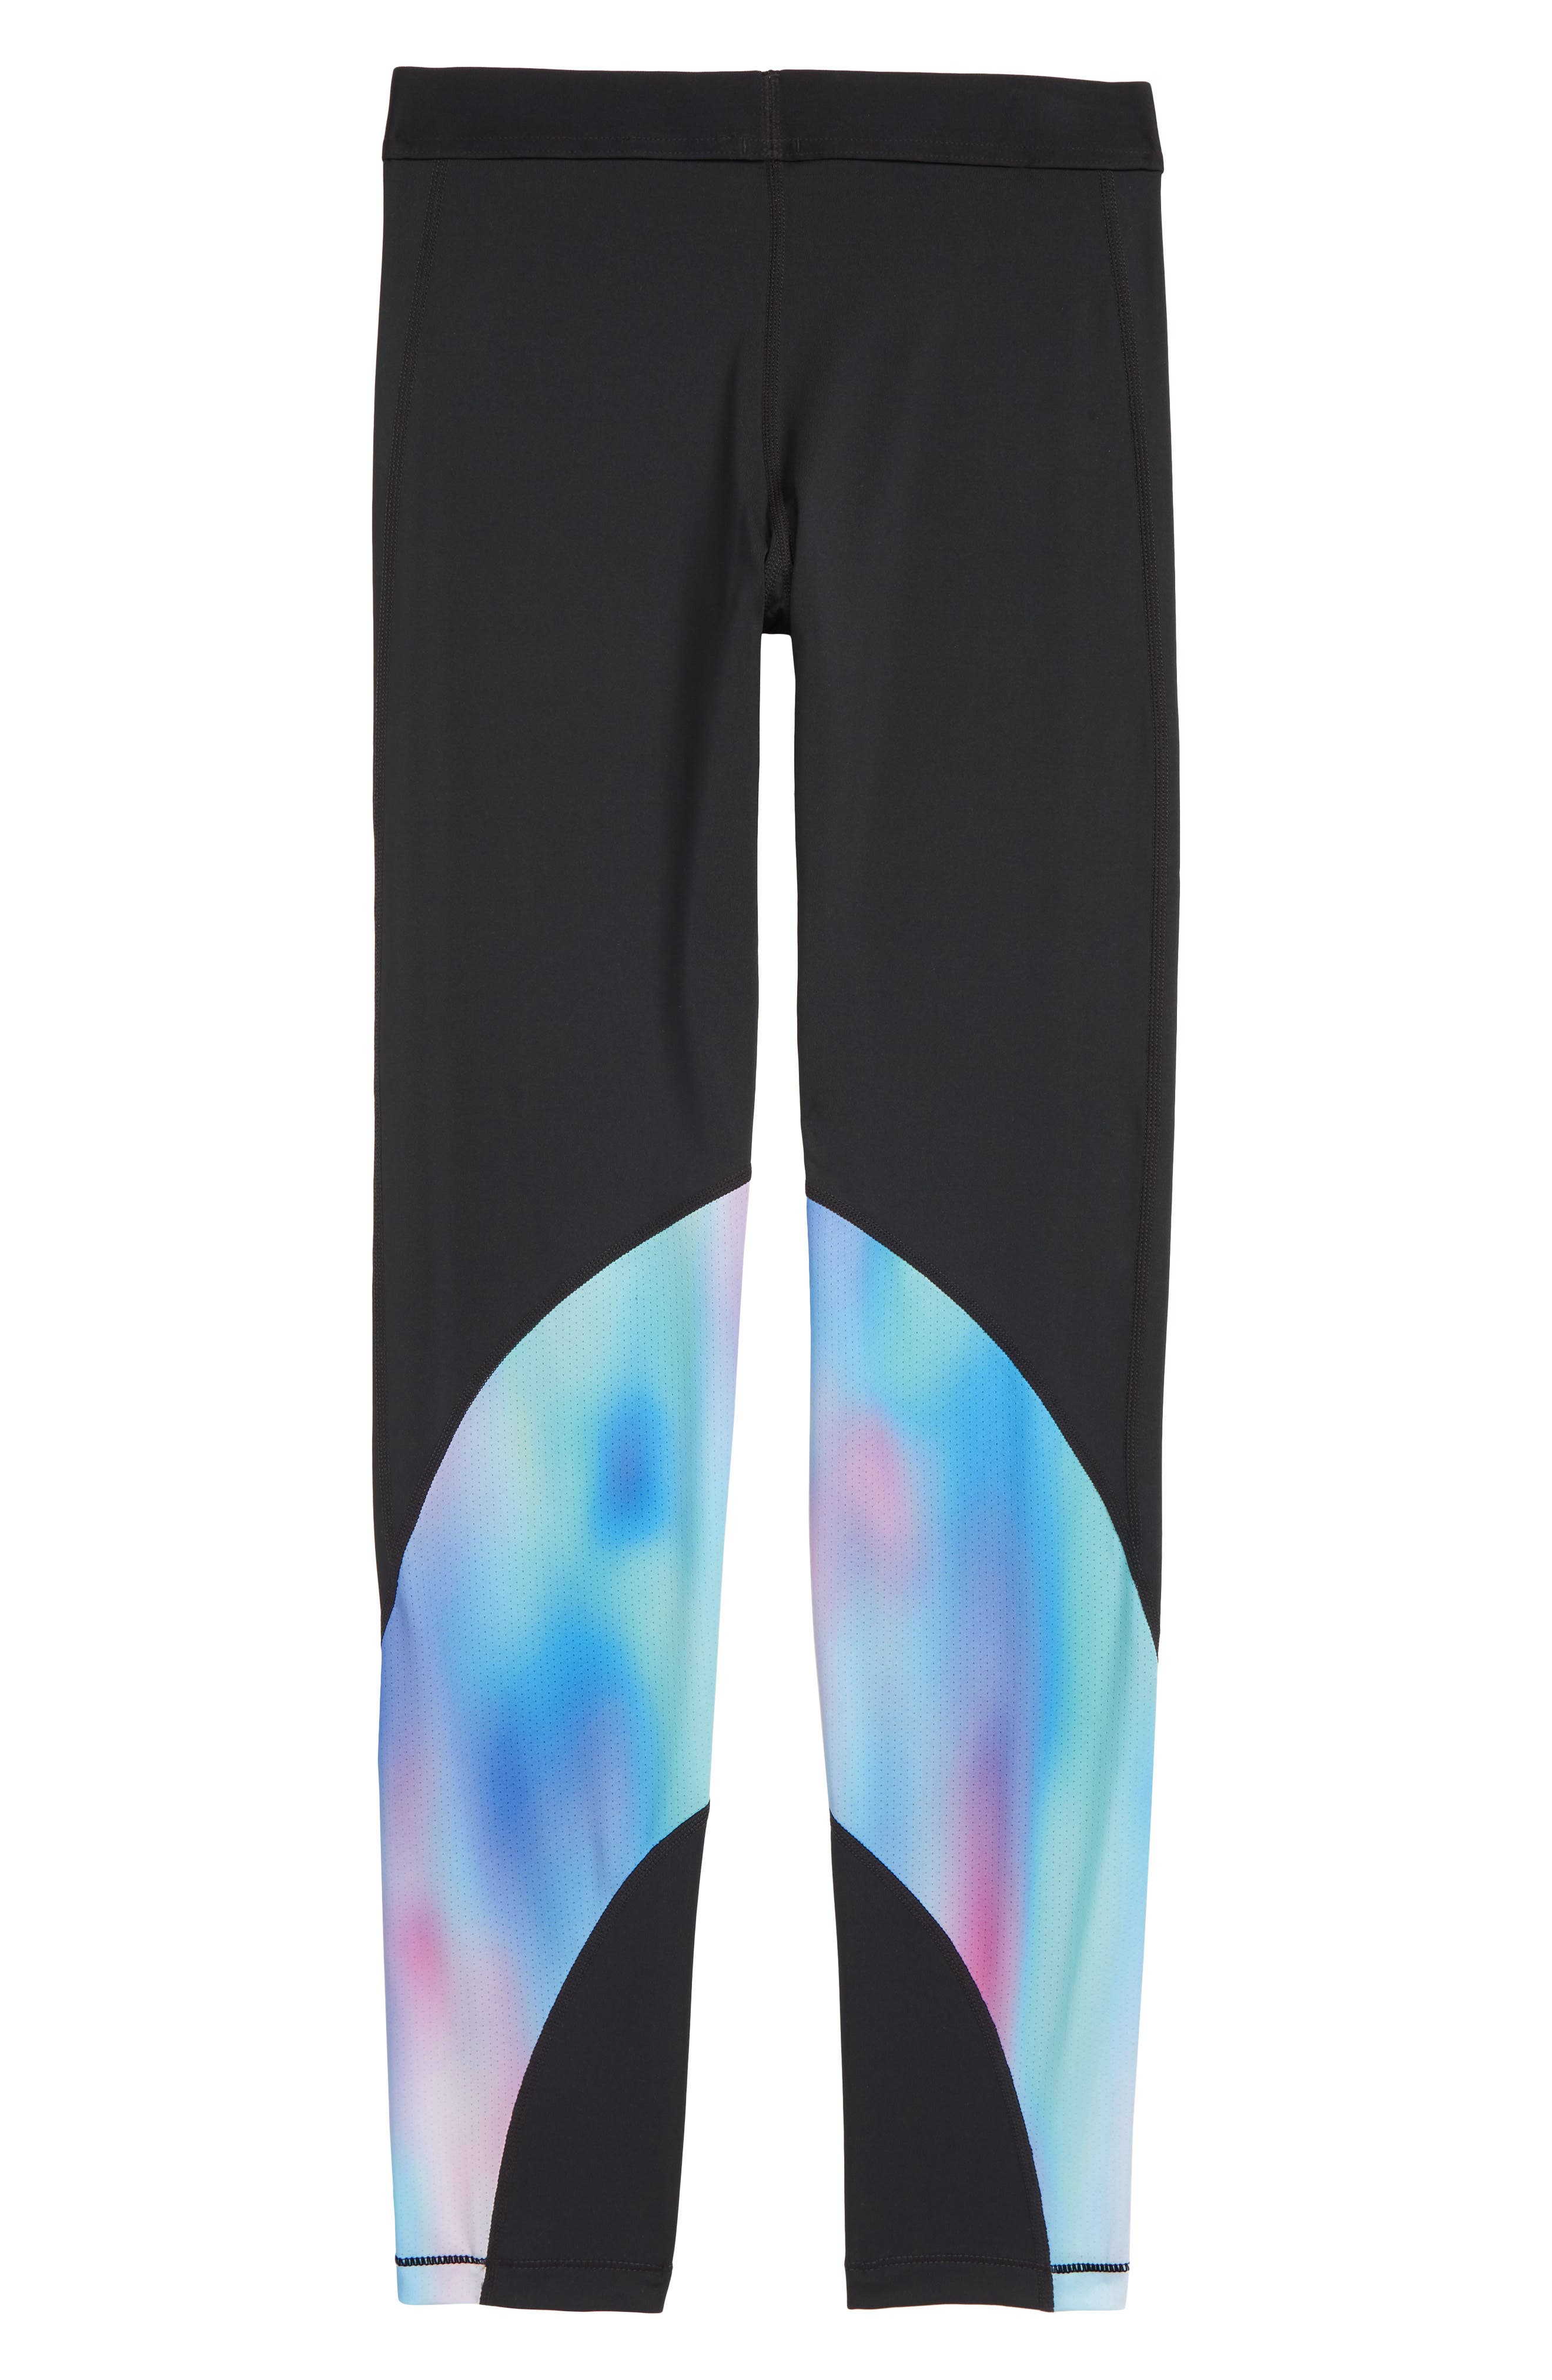 Pro Print Training Tights,                             Alternate thumbnail 2, color,                             BLK/ HYPER JD/ BLK/ LT AQUA